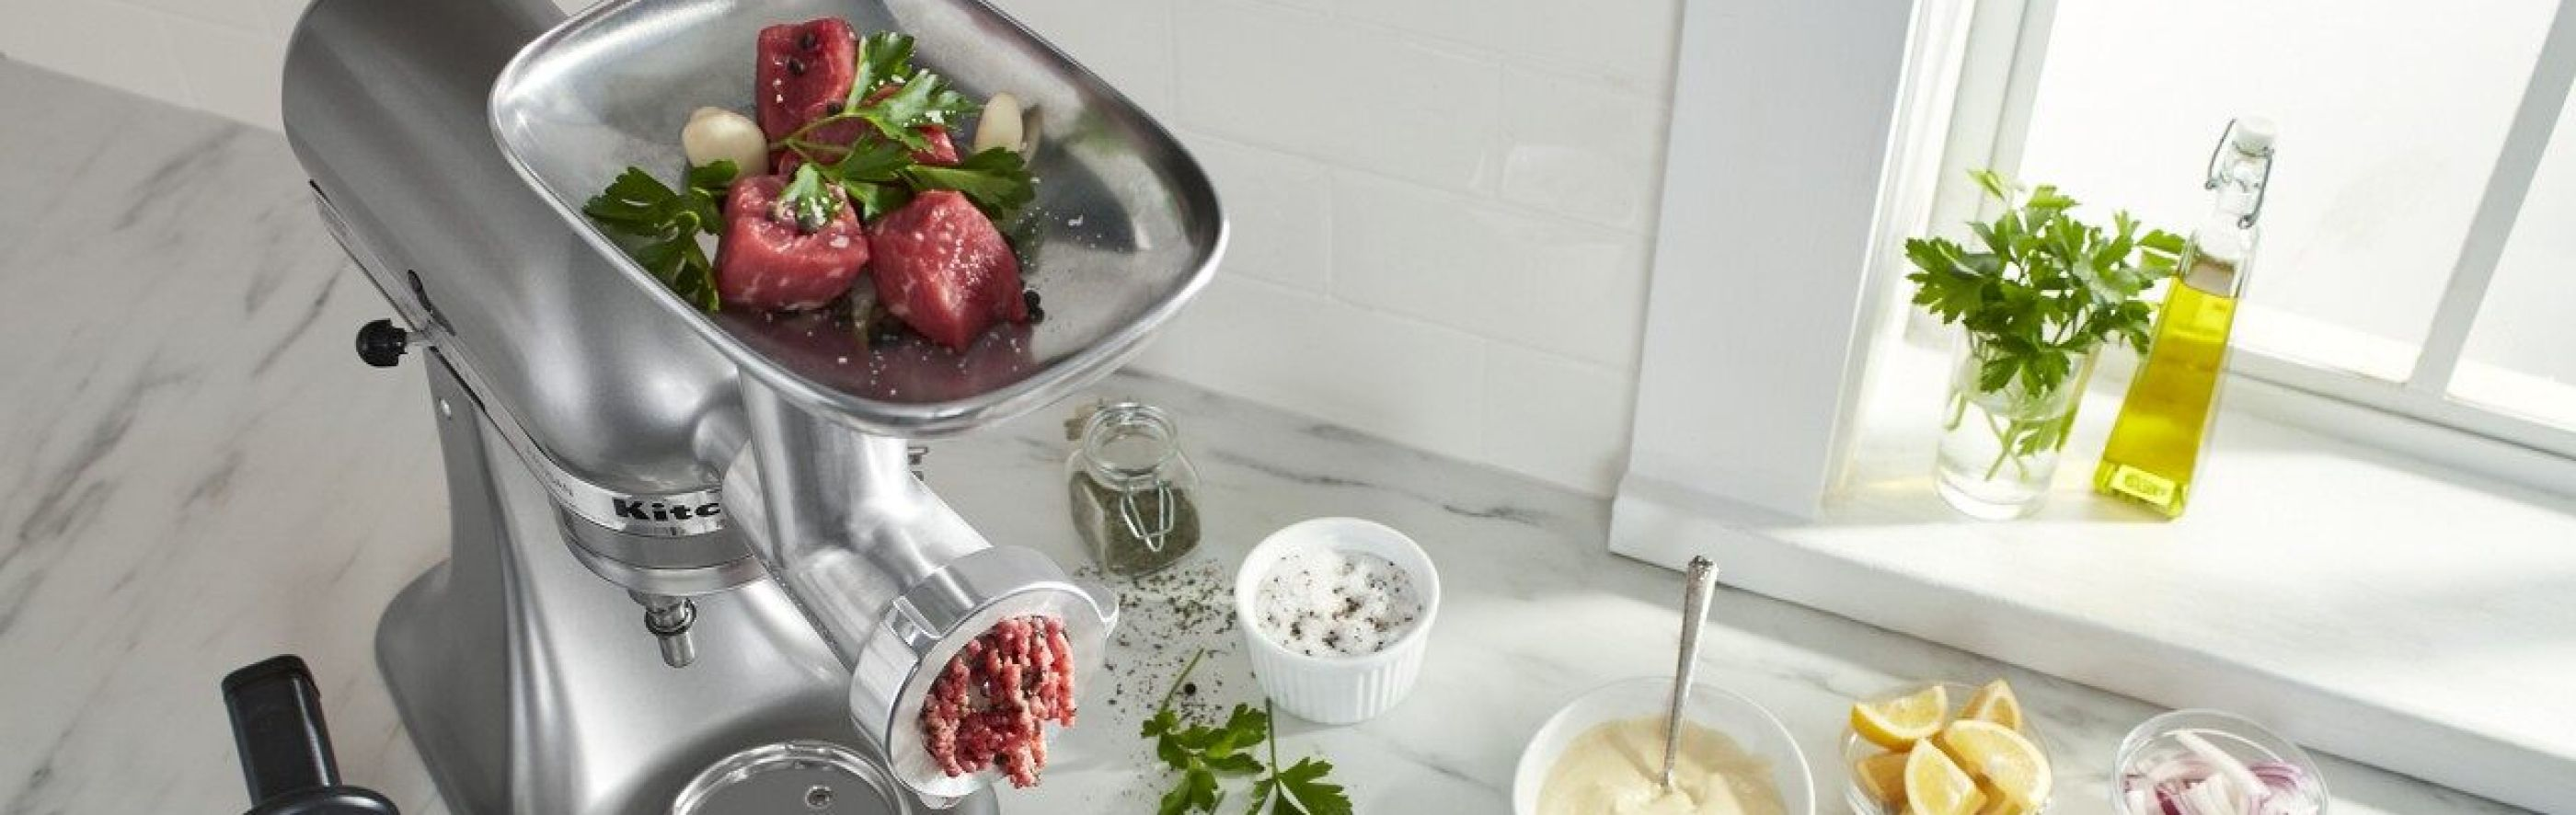 KitchenAid® Stand Mixer with food grinder attachment grinding meat on counter with ingredients